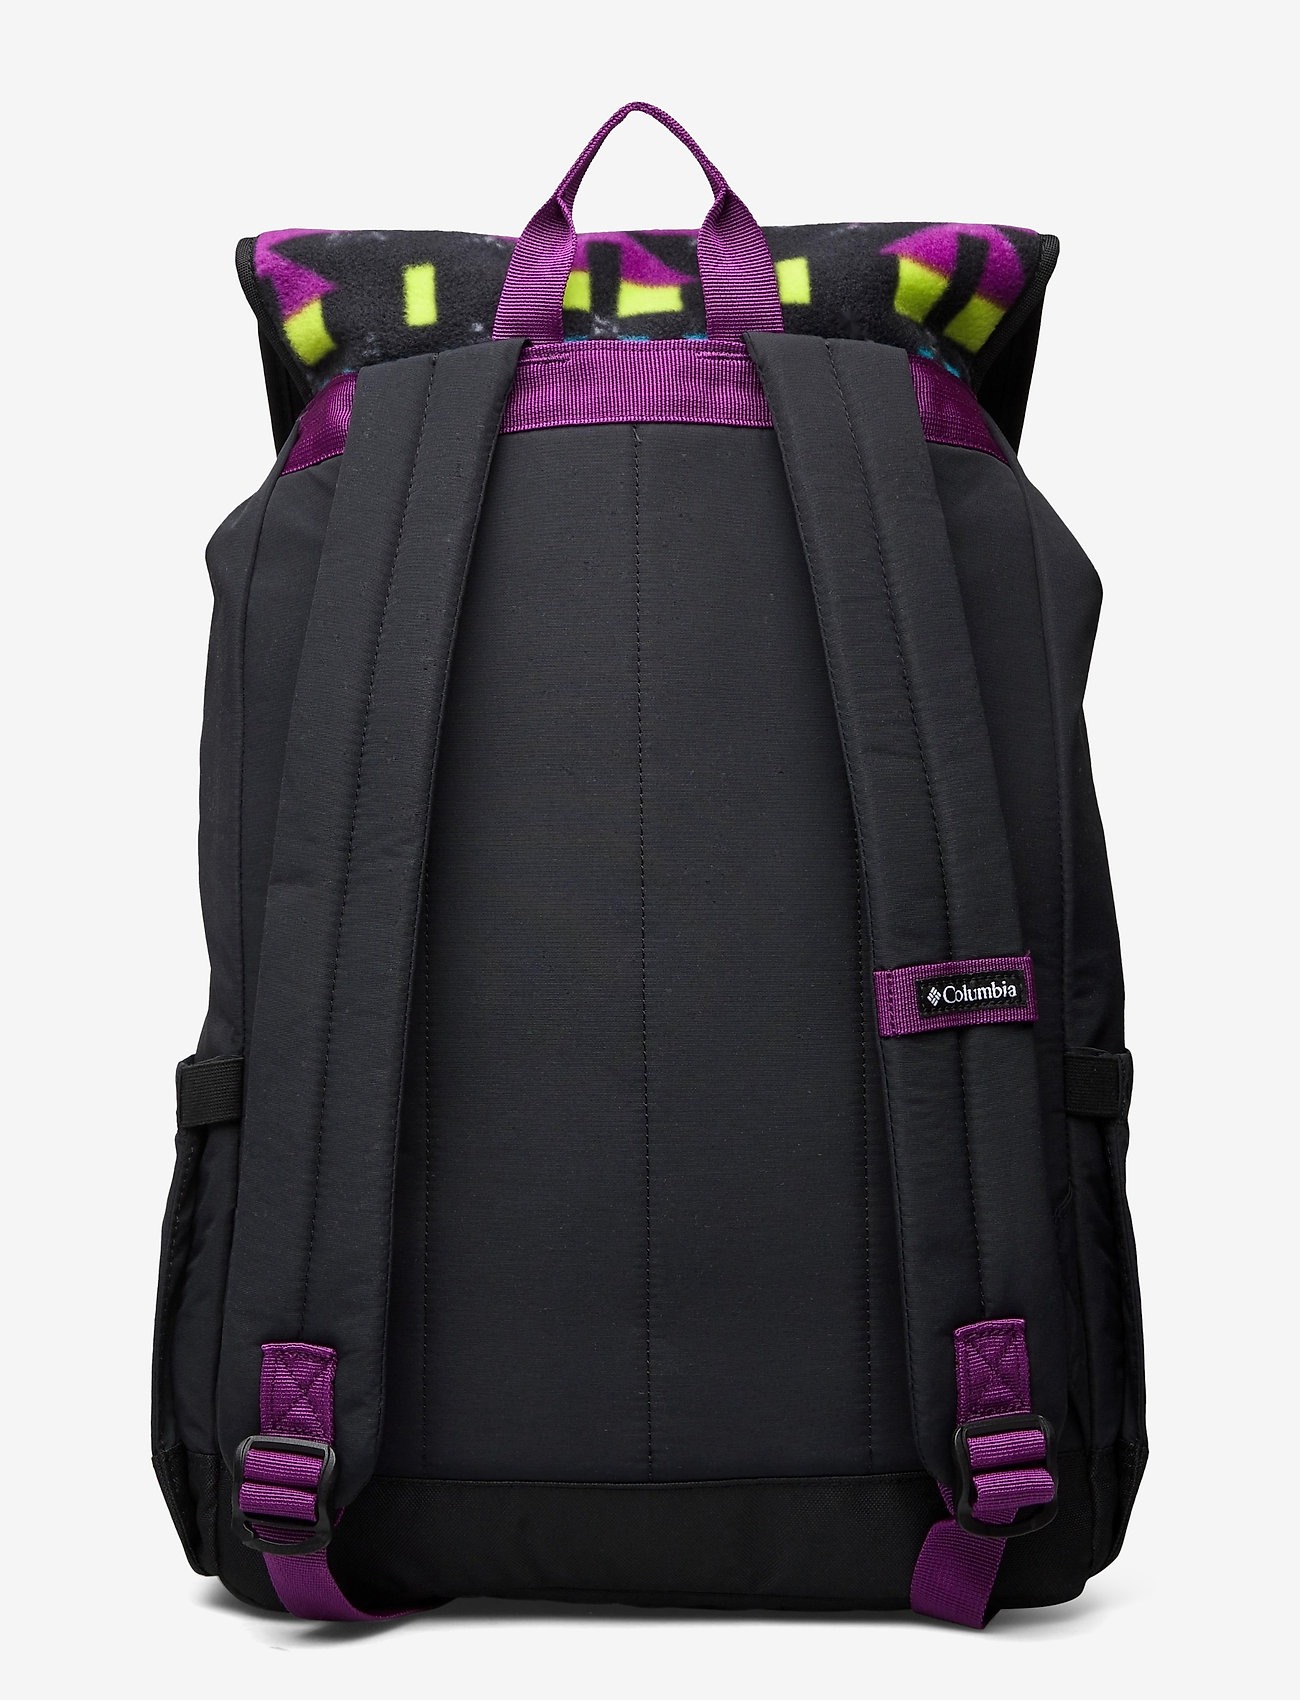 Columbia - Falmouth™ 21L Backpack - torby treningowe - black, black pr - 1